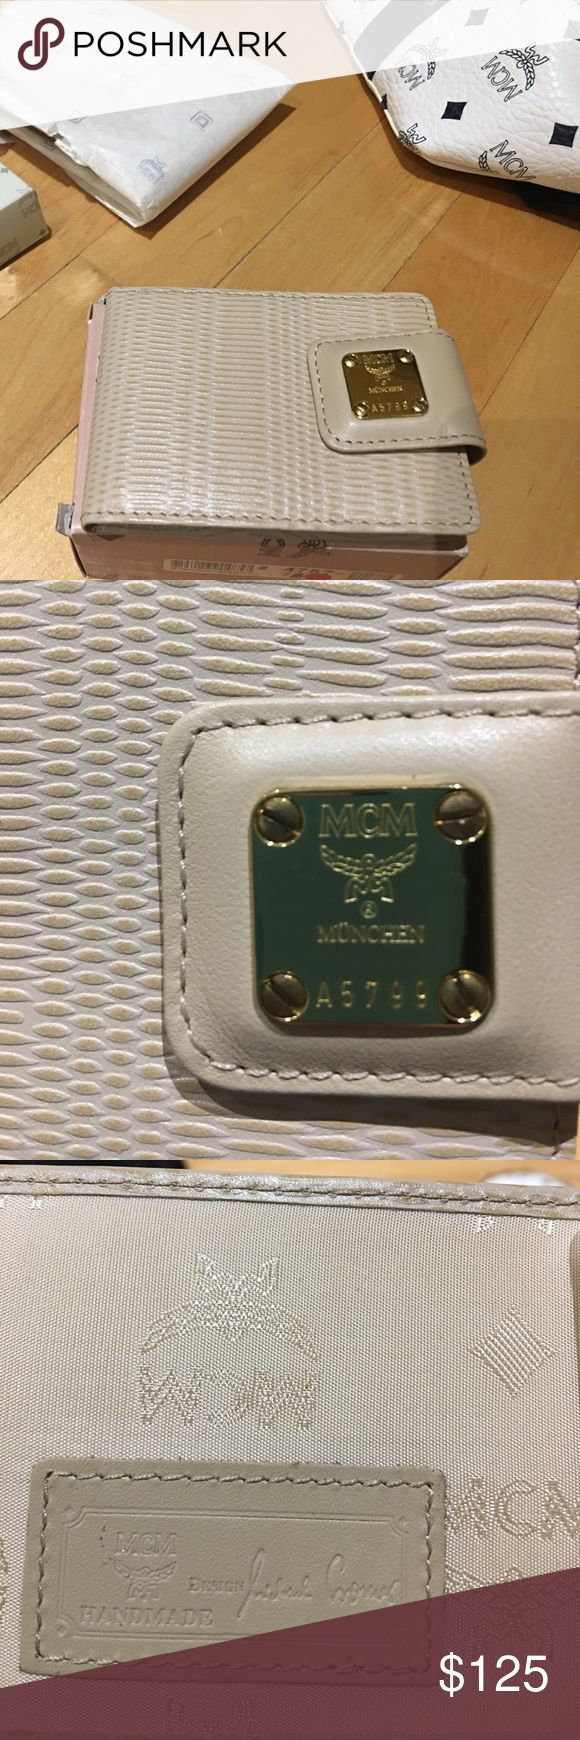 MCM cardholder 10 card Cardholder by MCM. Brand New MCM Accessories Key & Card Holders